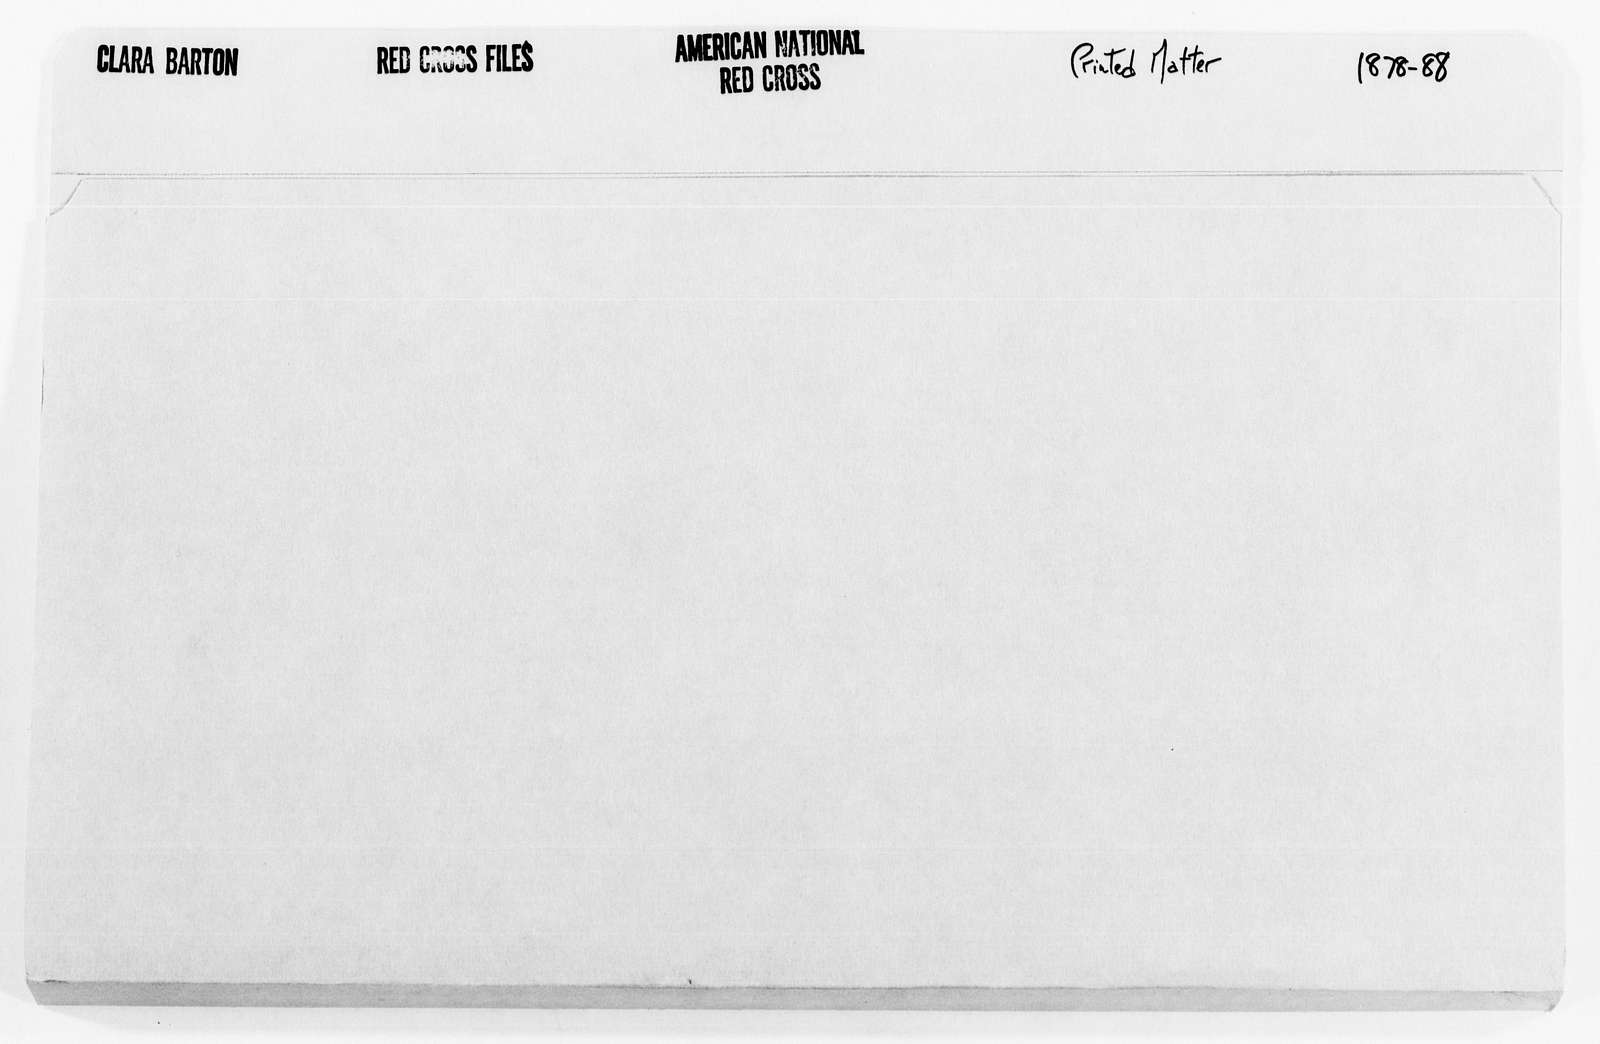 Clara Barton Papers: Red Cross File, 1863-1957; American National Red Cross, 1878-1957; Printed matter, 1878-1923, undated